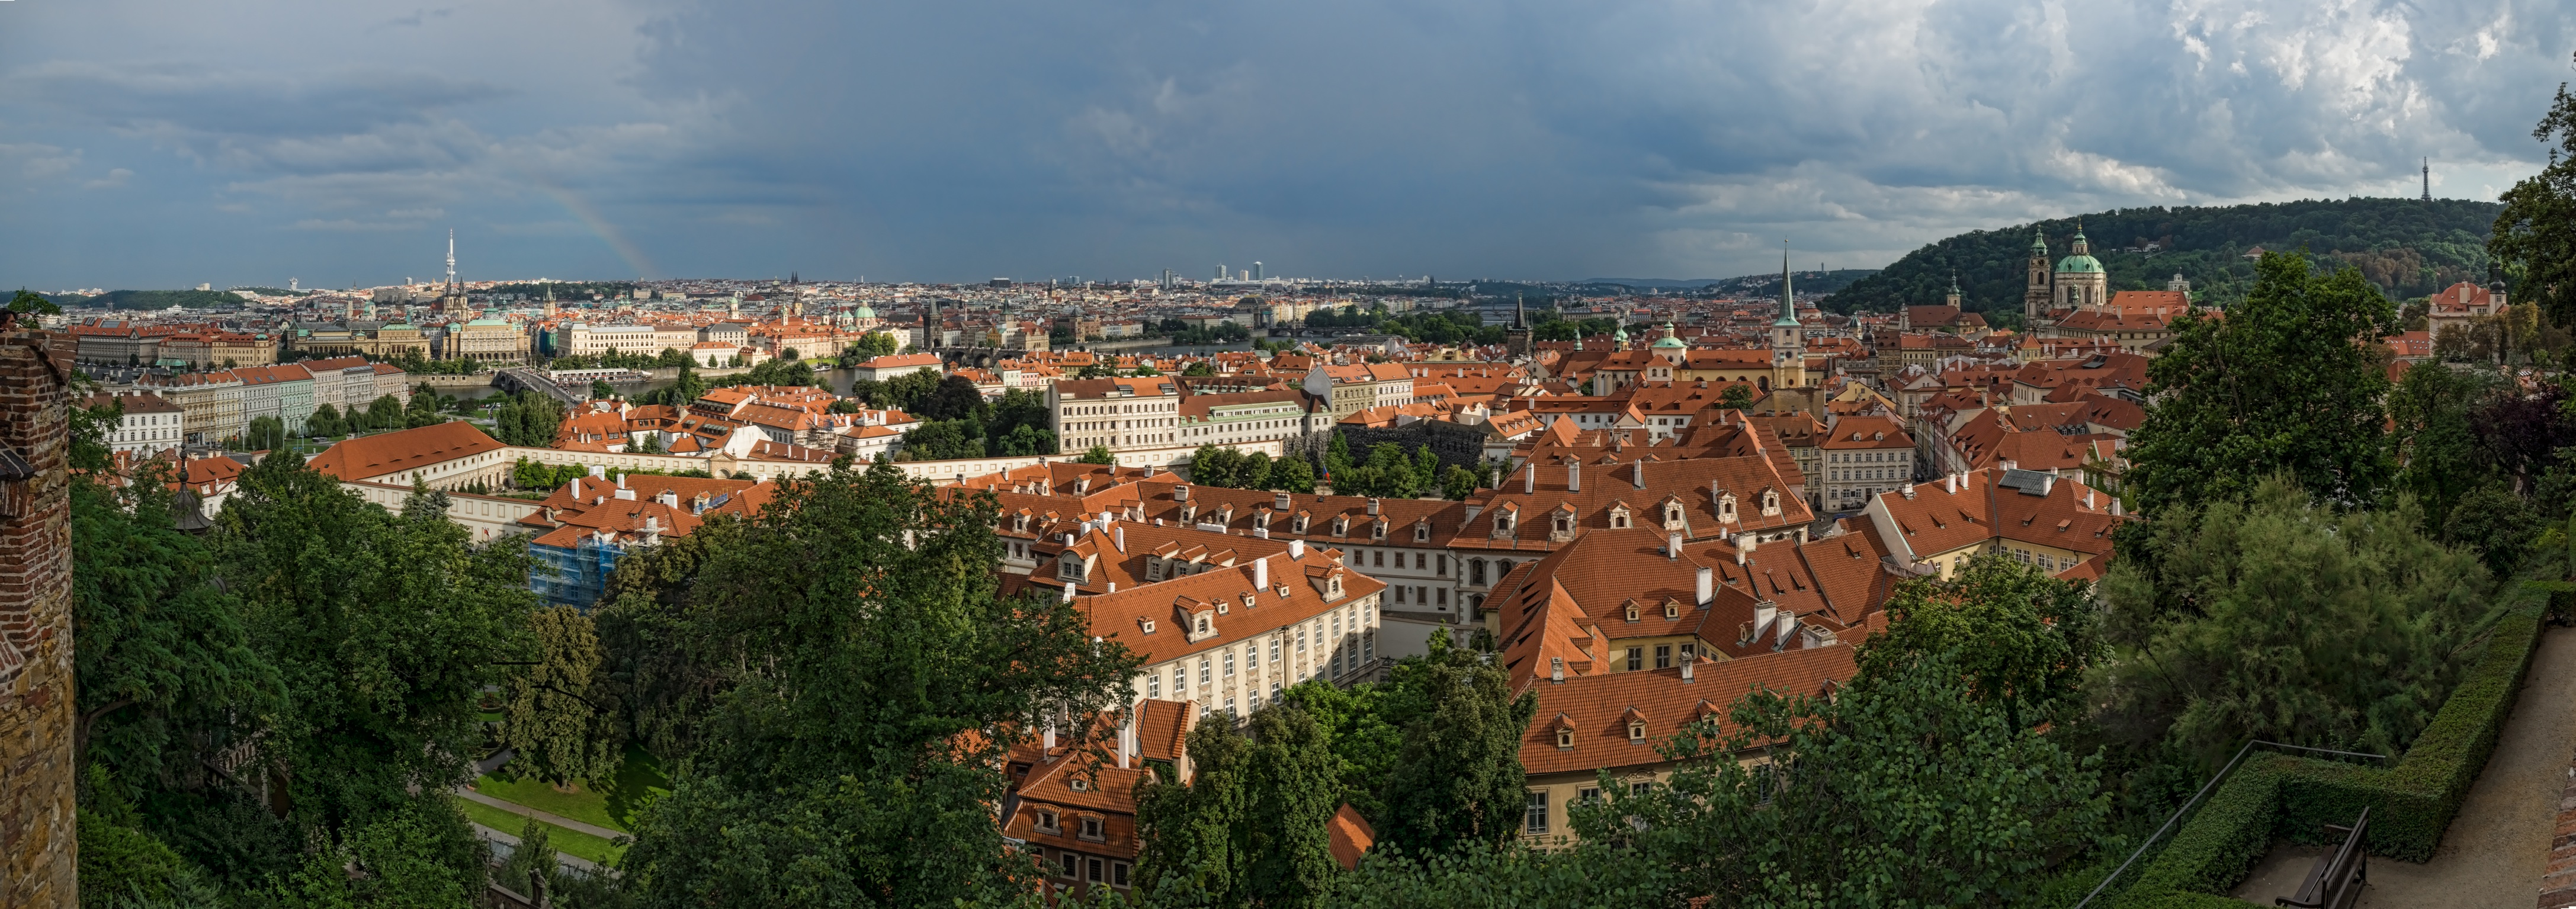 The Historic Center of Prague, Czech Republic